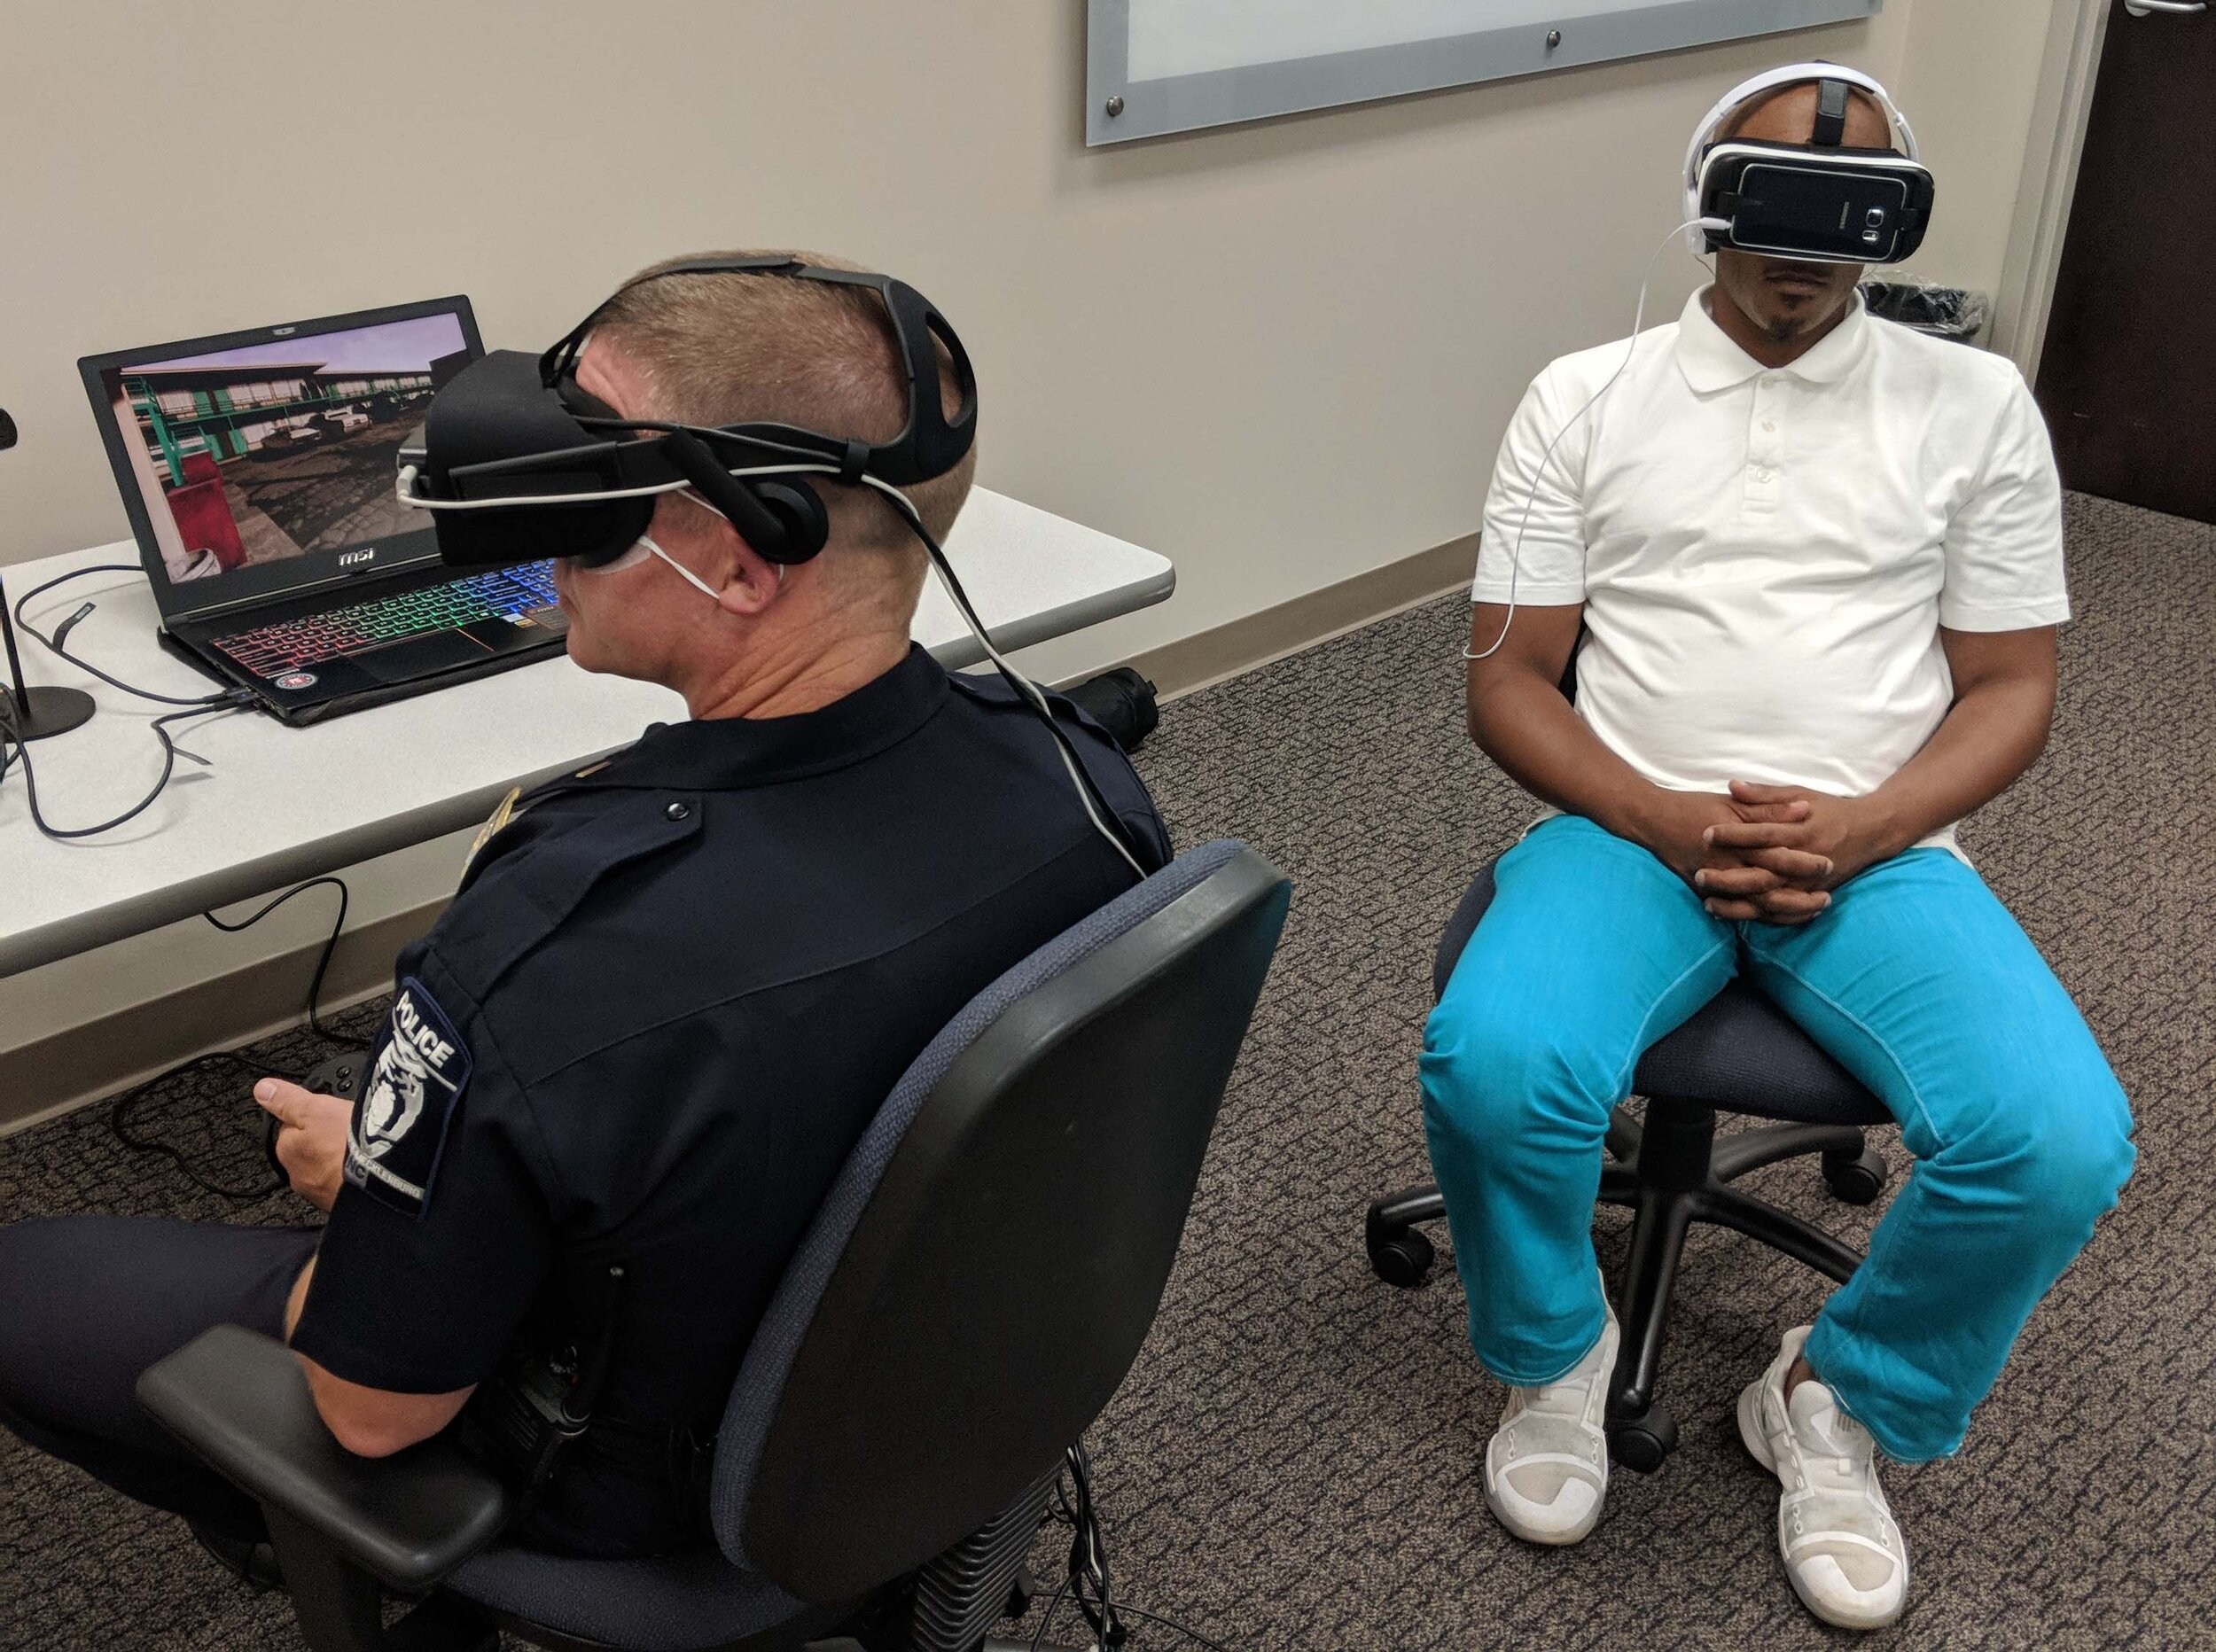 A CMPD lieutenant trades places with a citizen through virtual reality in Charlotte, NC.